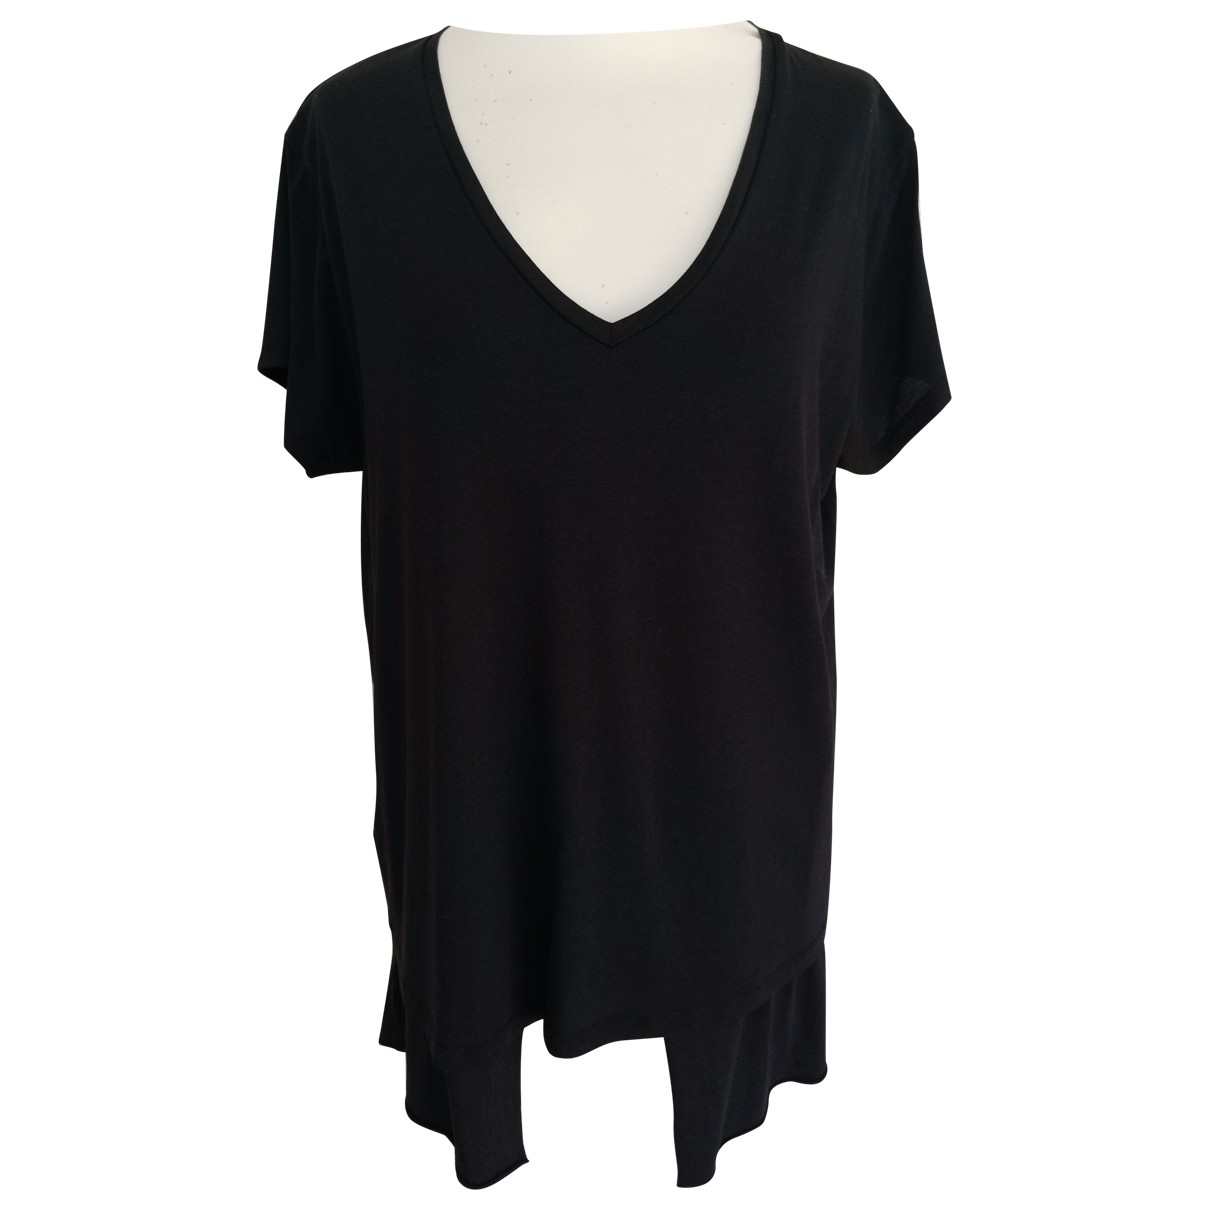 Hironae \N Black Cotton  top for Women L International